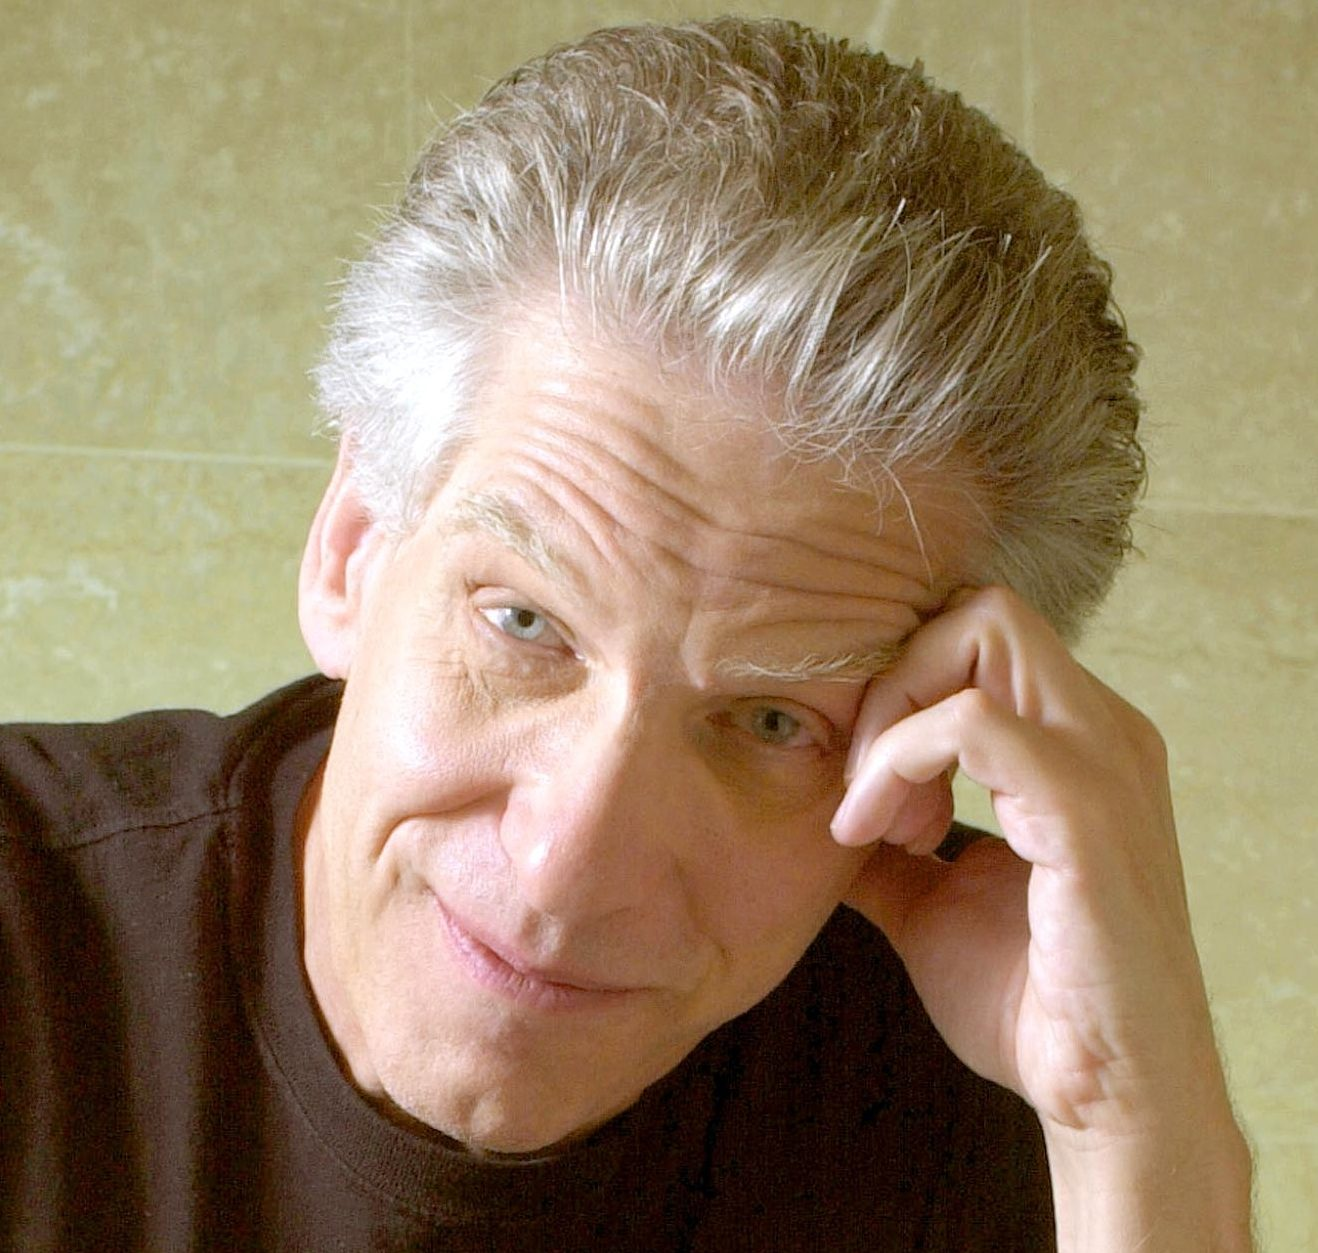 Director DAVID CRONENBERG of the film Spider during the Toronto International Film Festival e1604405988234 20 Frightening Facts About The Fly